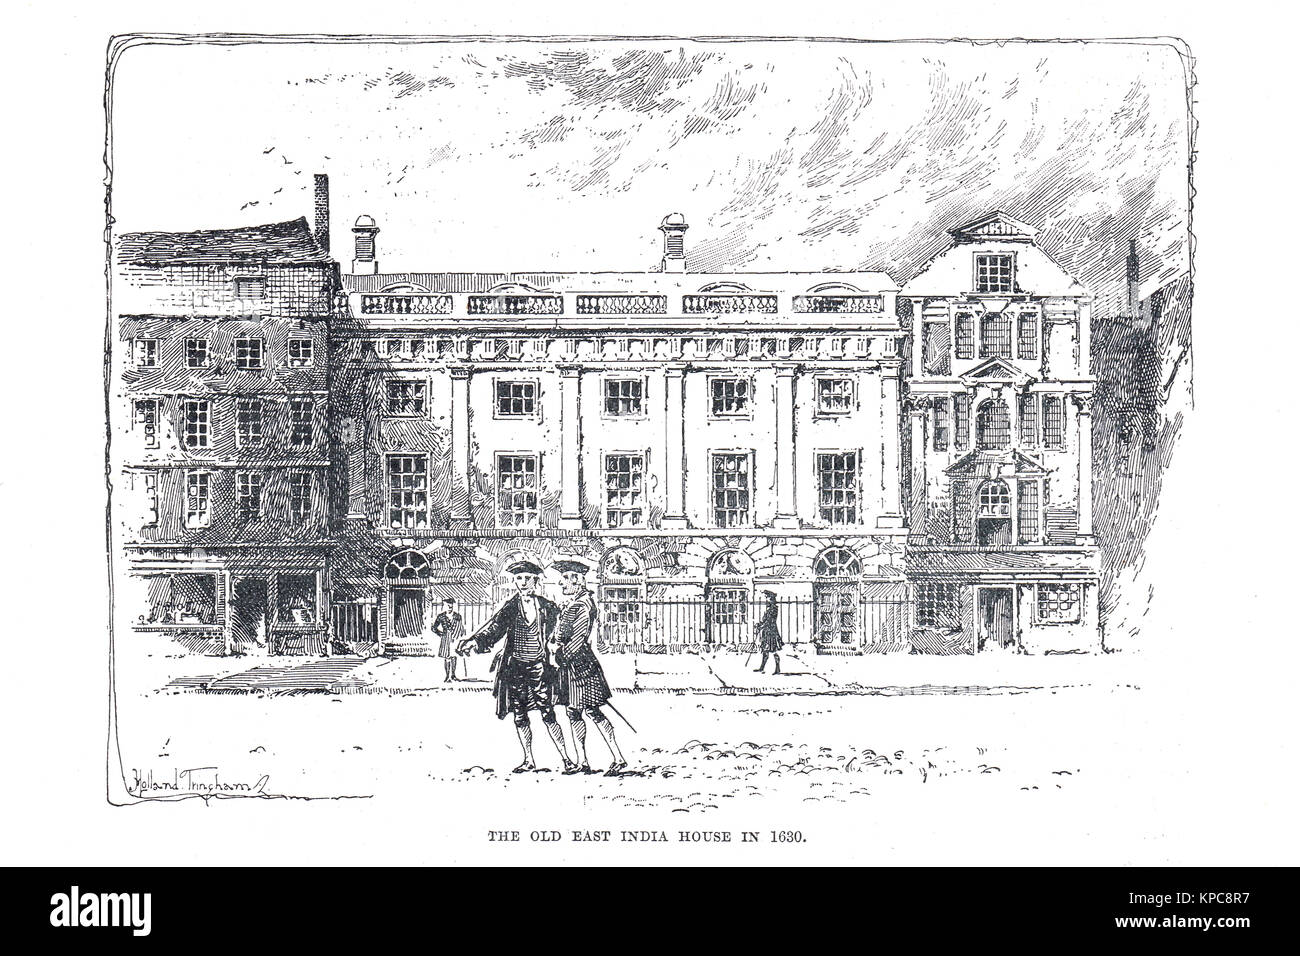 Die alten East India House, London 1630 Stockbild